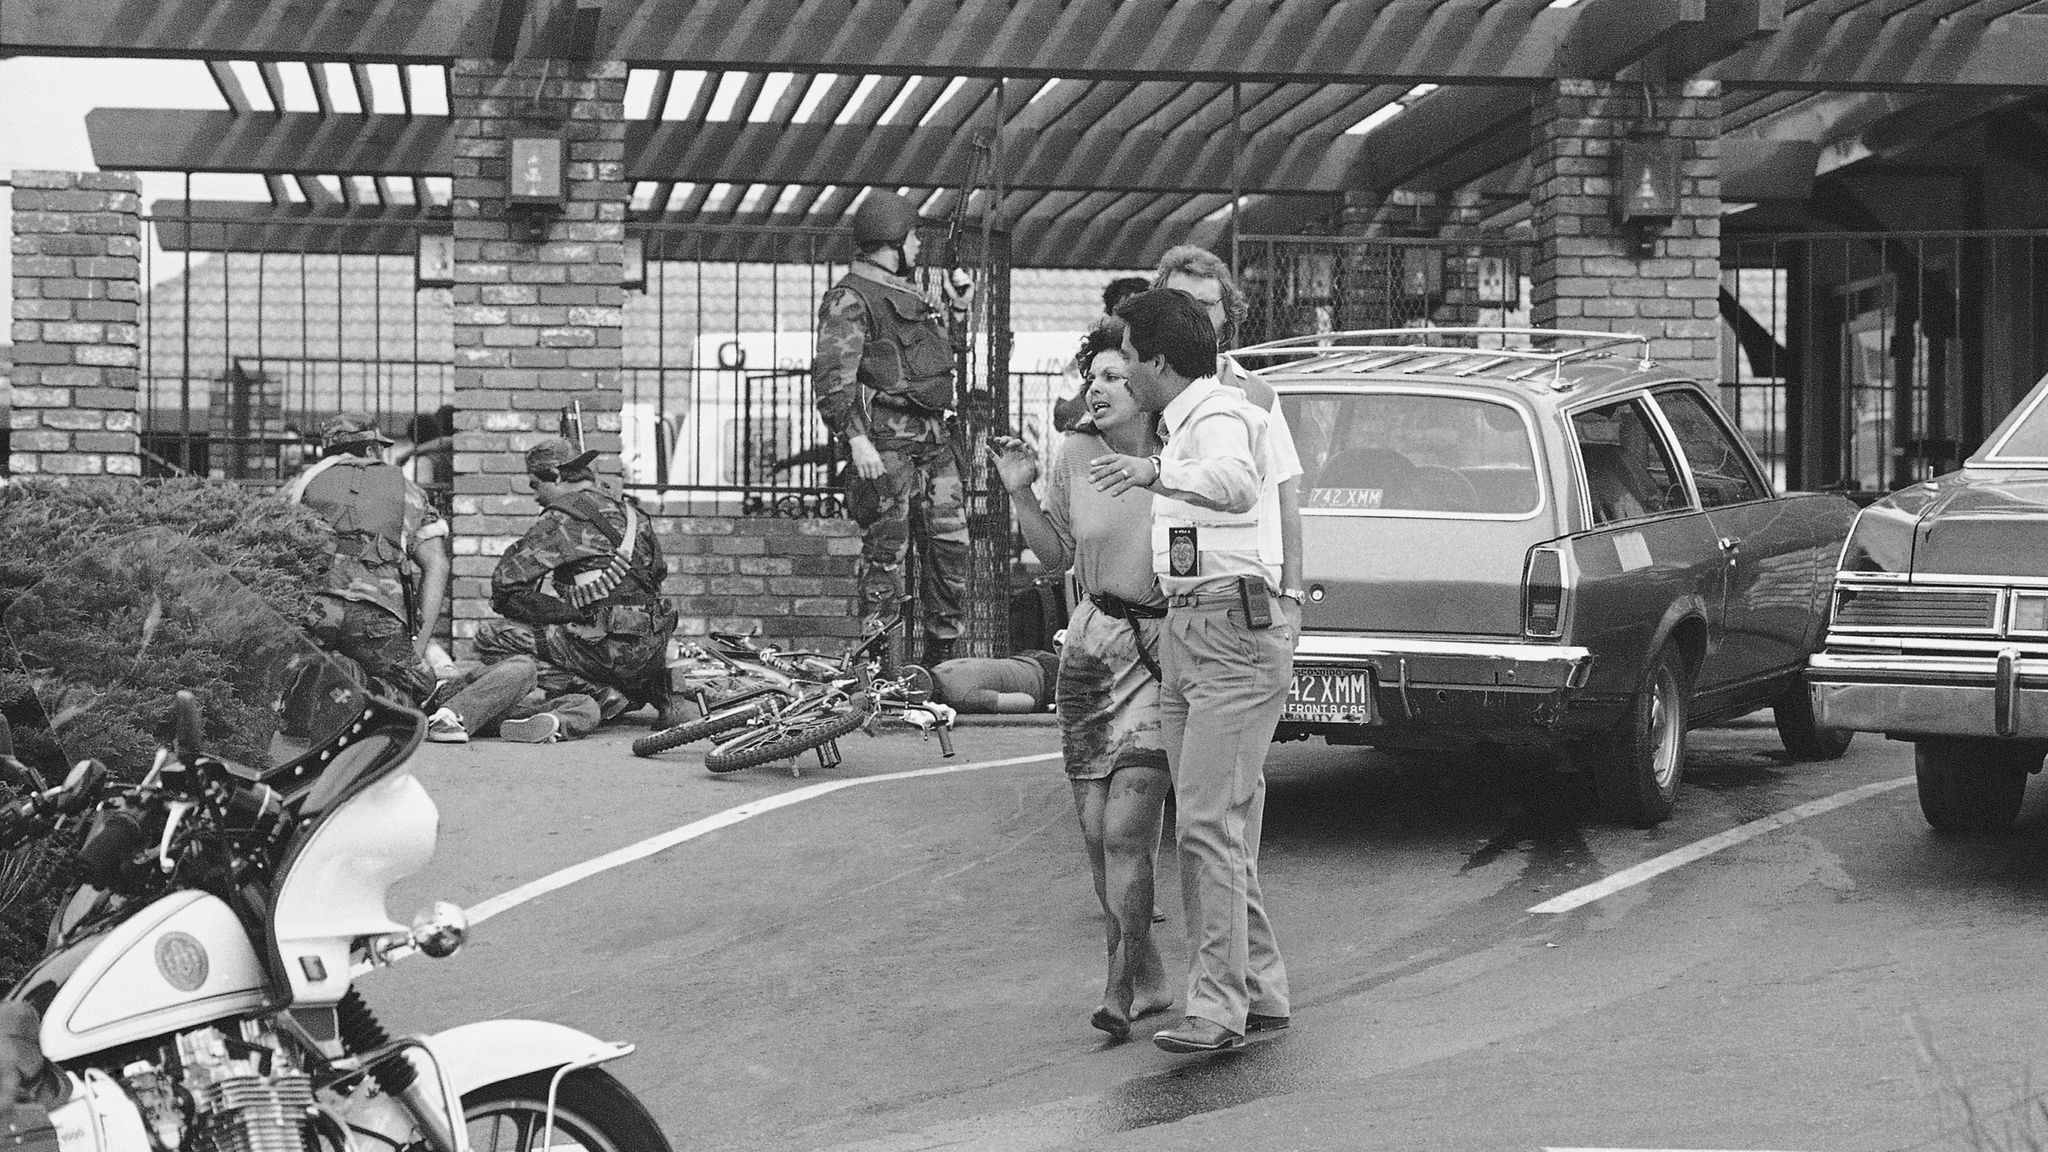 A wounded victim is led away from the scene of a mass shooting at a McDonald's in San Ysidro, Calif., in 1984.